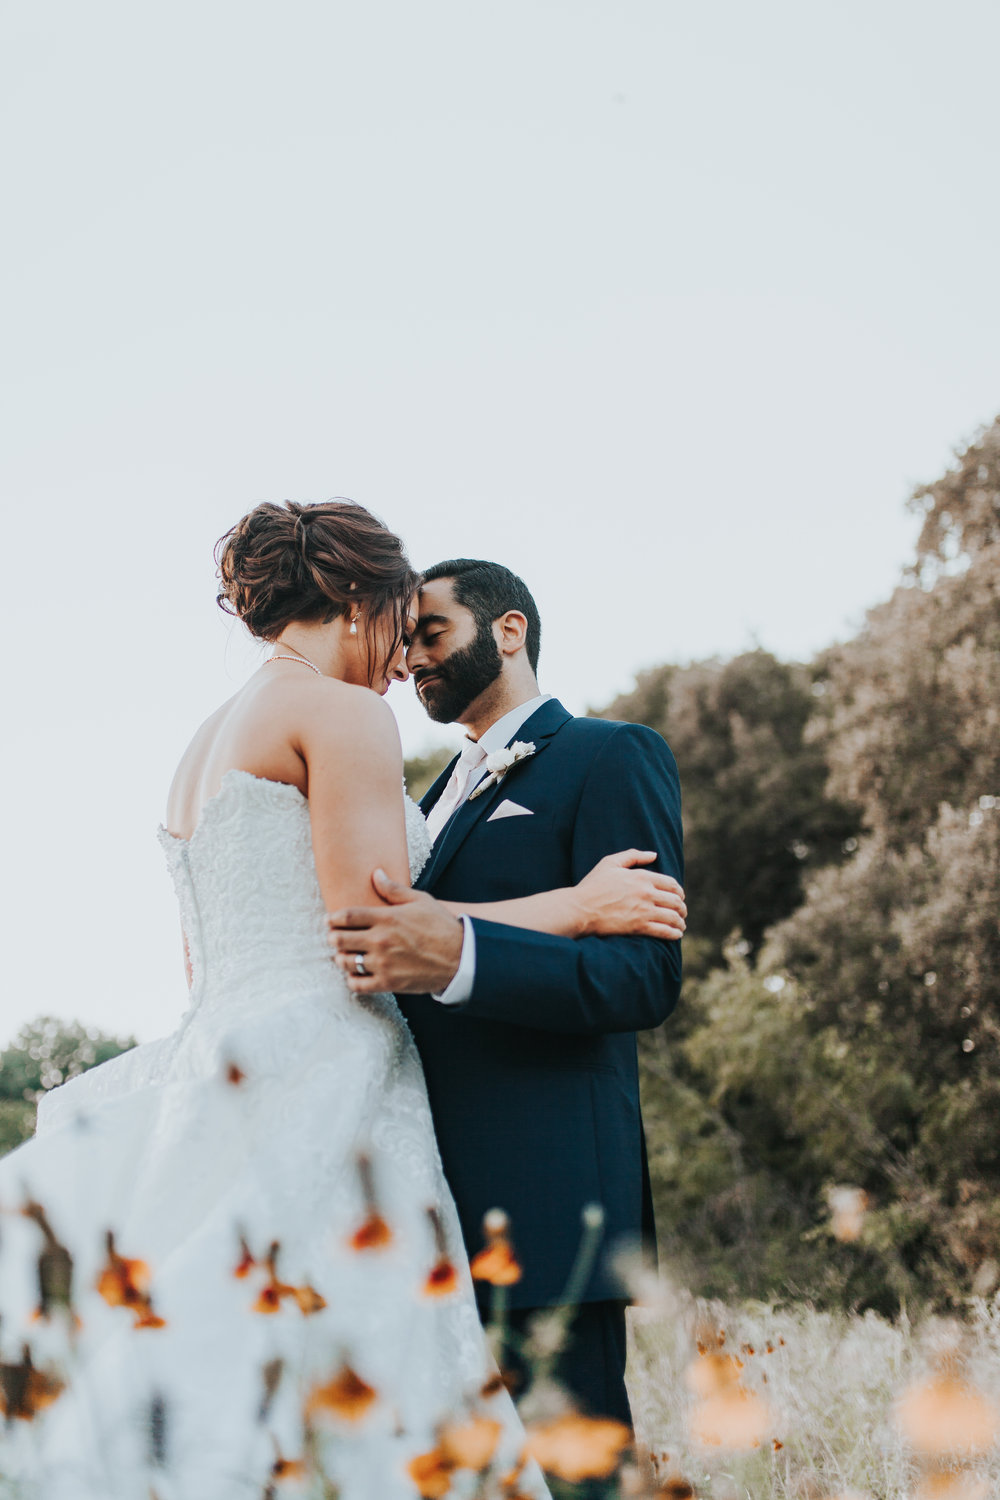 coming soon! Anna & Michael  A CLassic & Timeless Wedding // Brodie Homestead